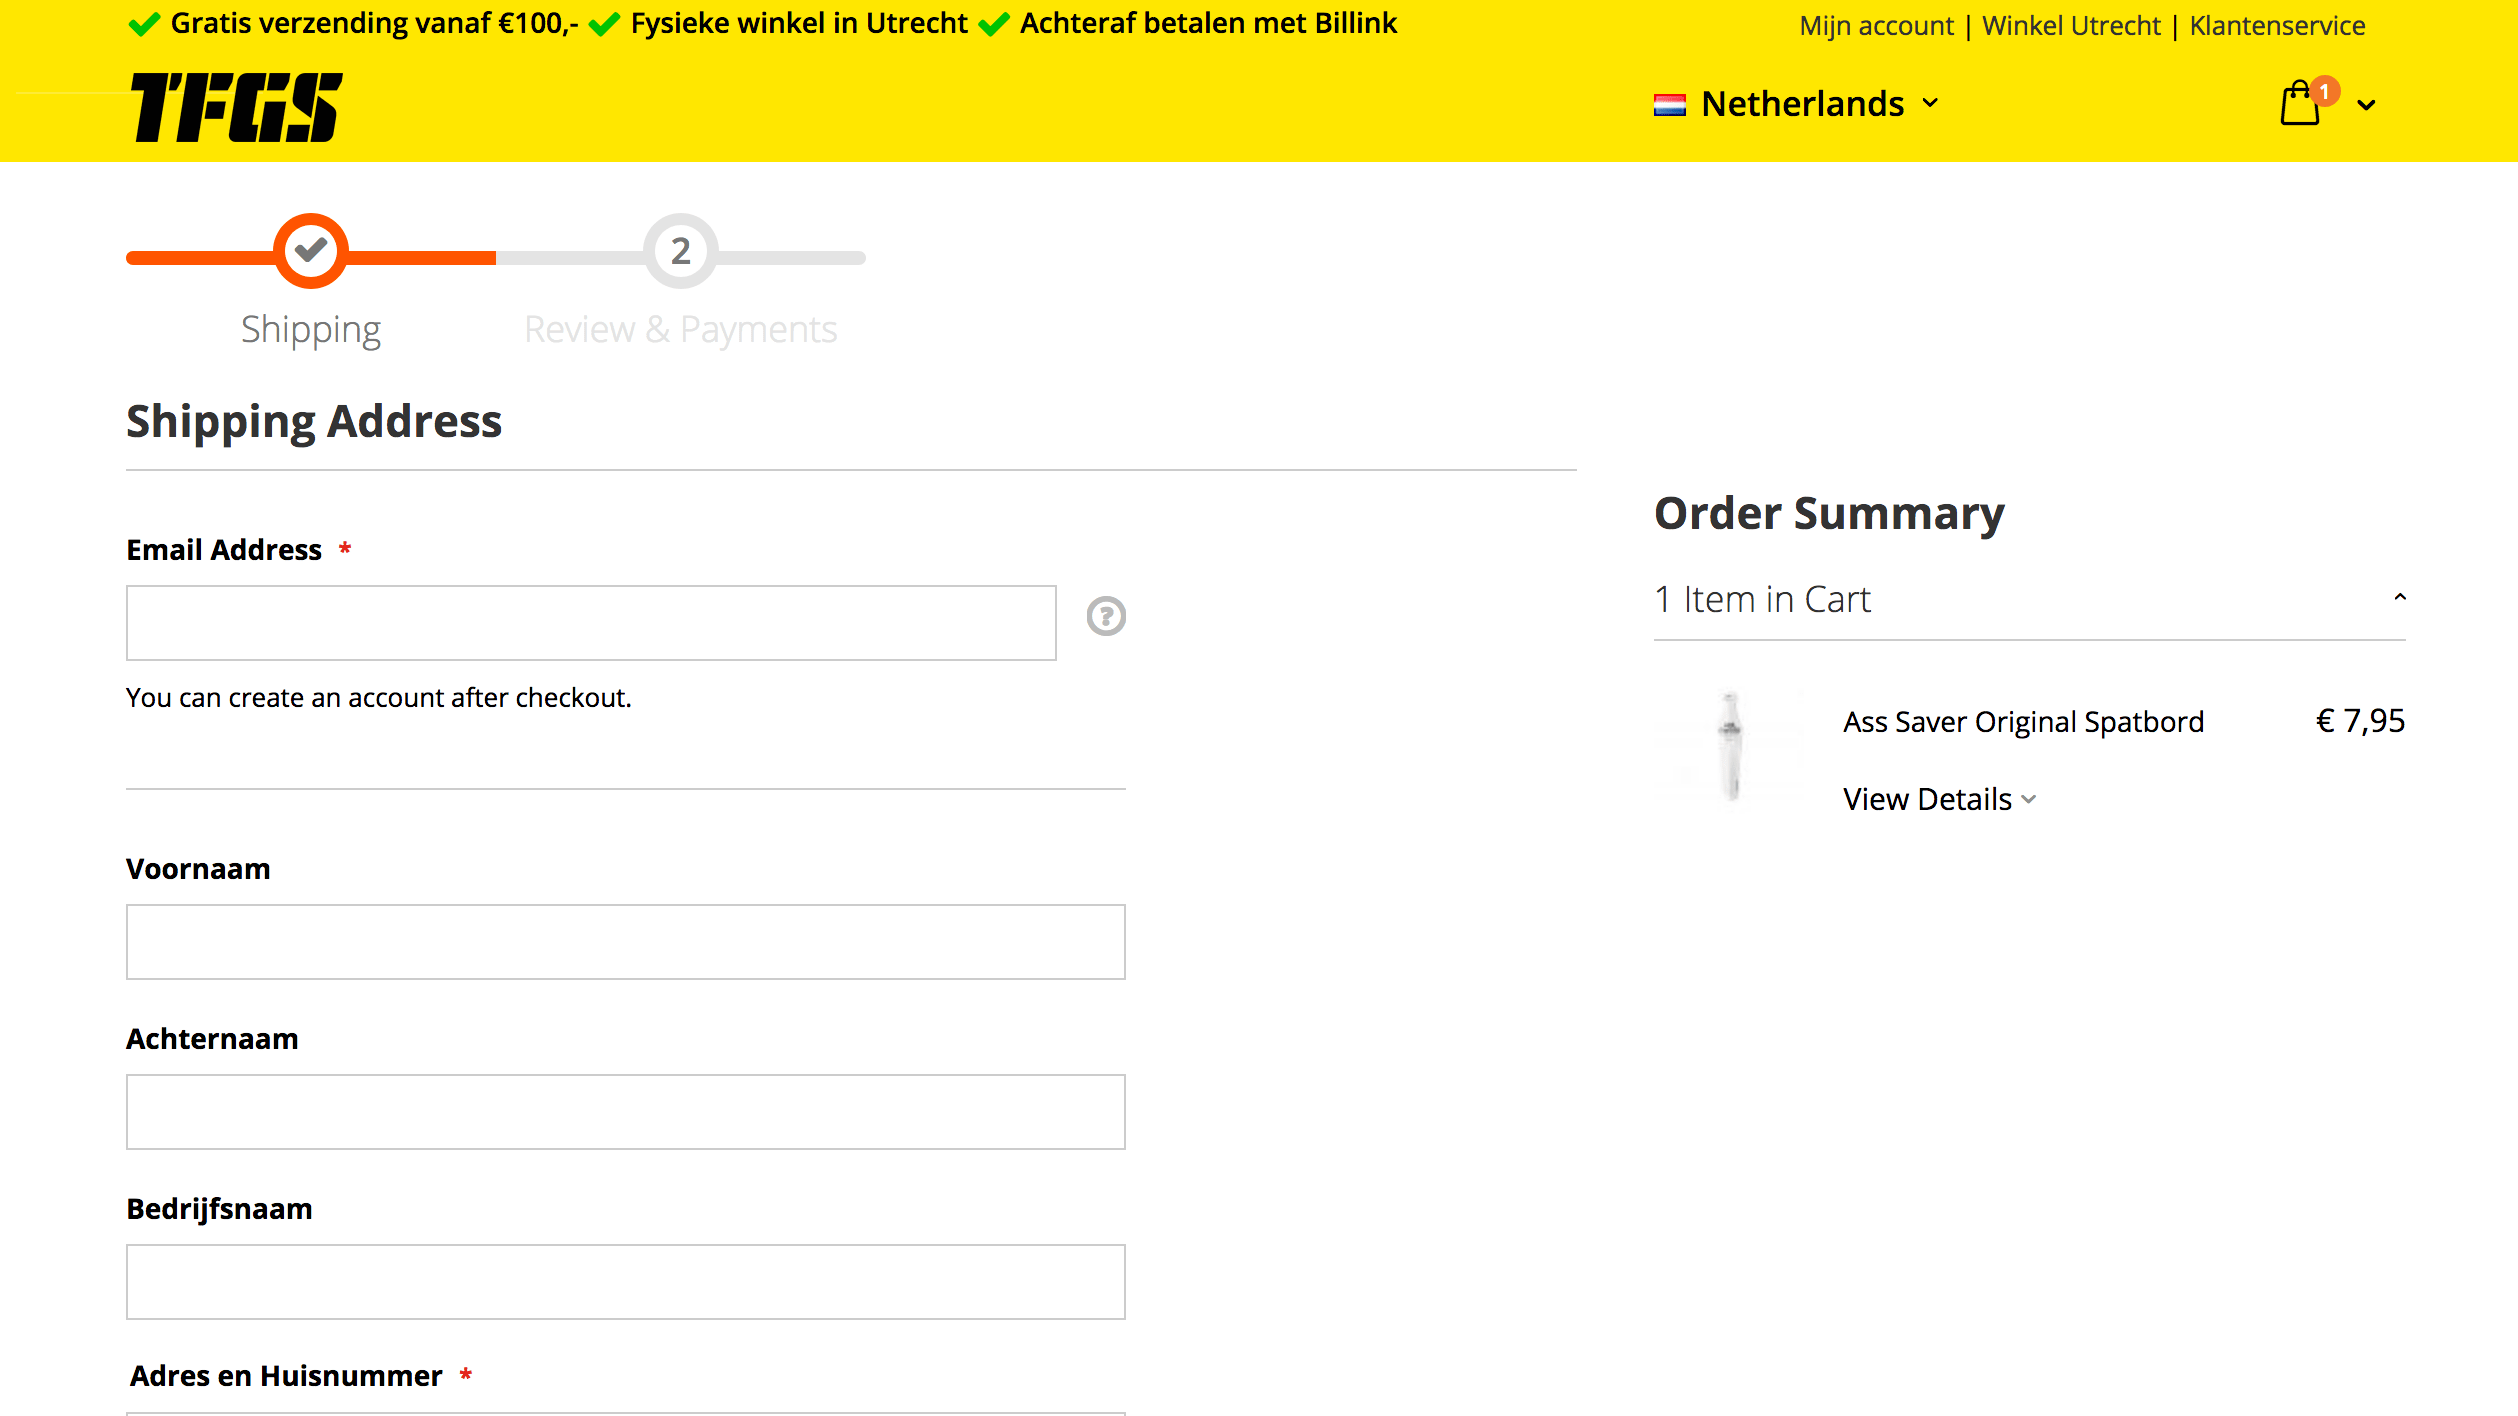 Klantenservice Utrecht Magento 2 1 Checkout Showing Review Payment Before Shipping